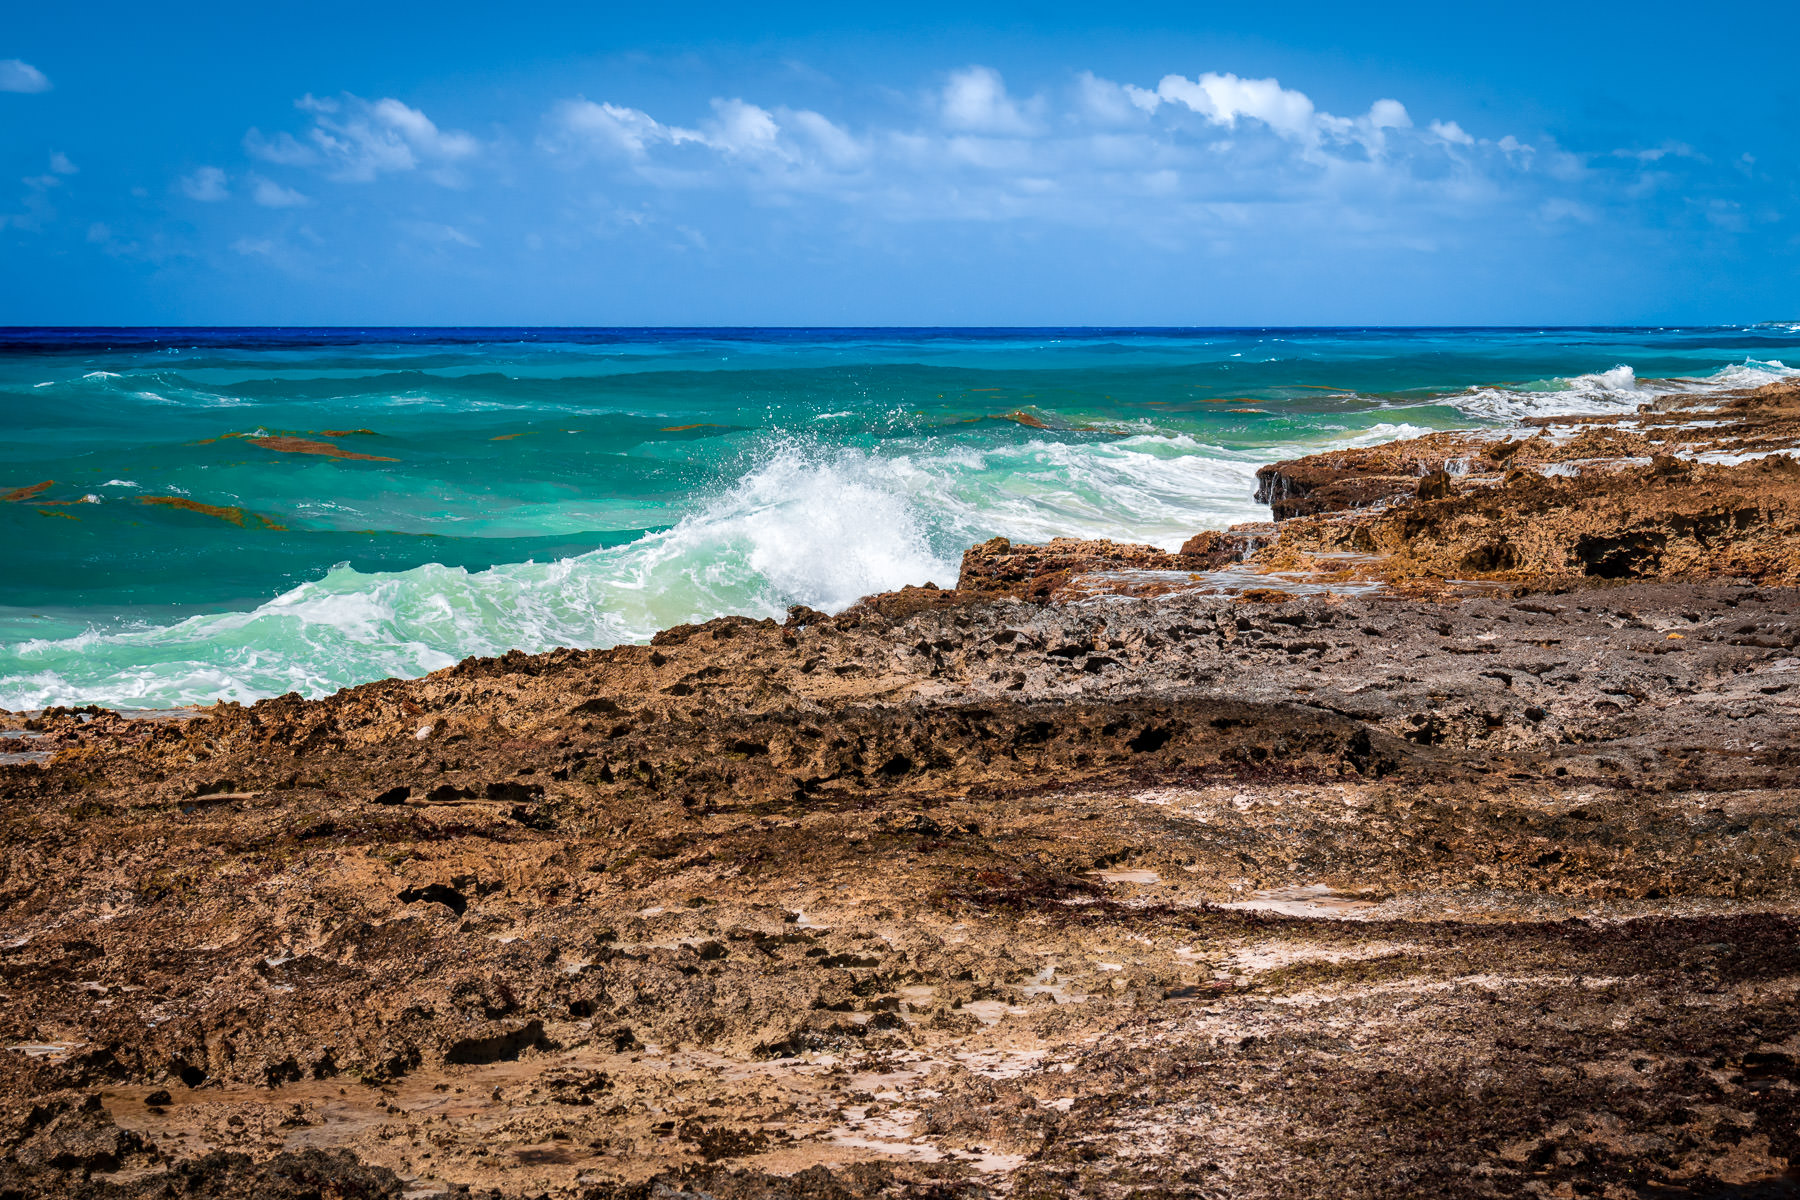 Waves crash onto the rough, rocky shore of the east side of Cozumel, Mexico.